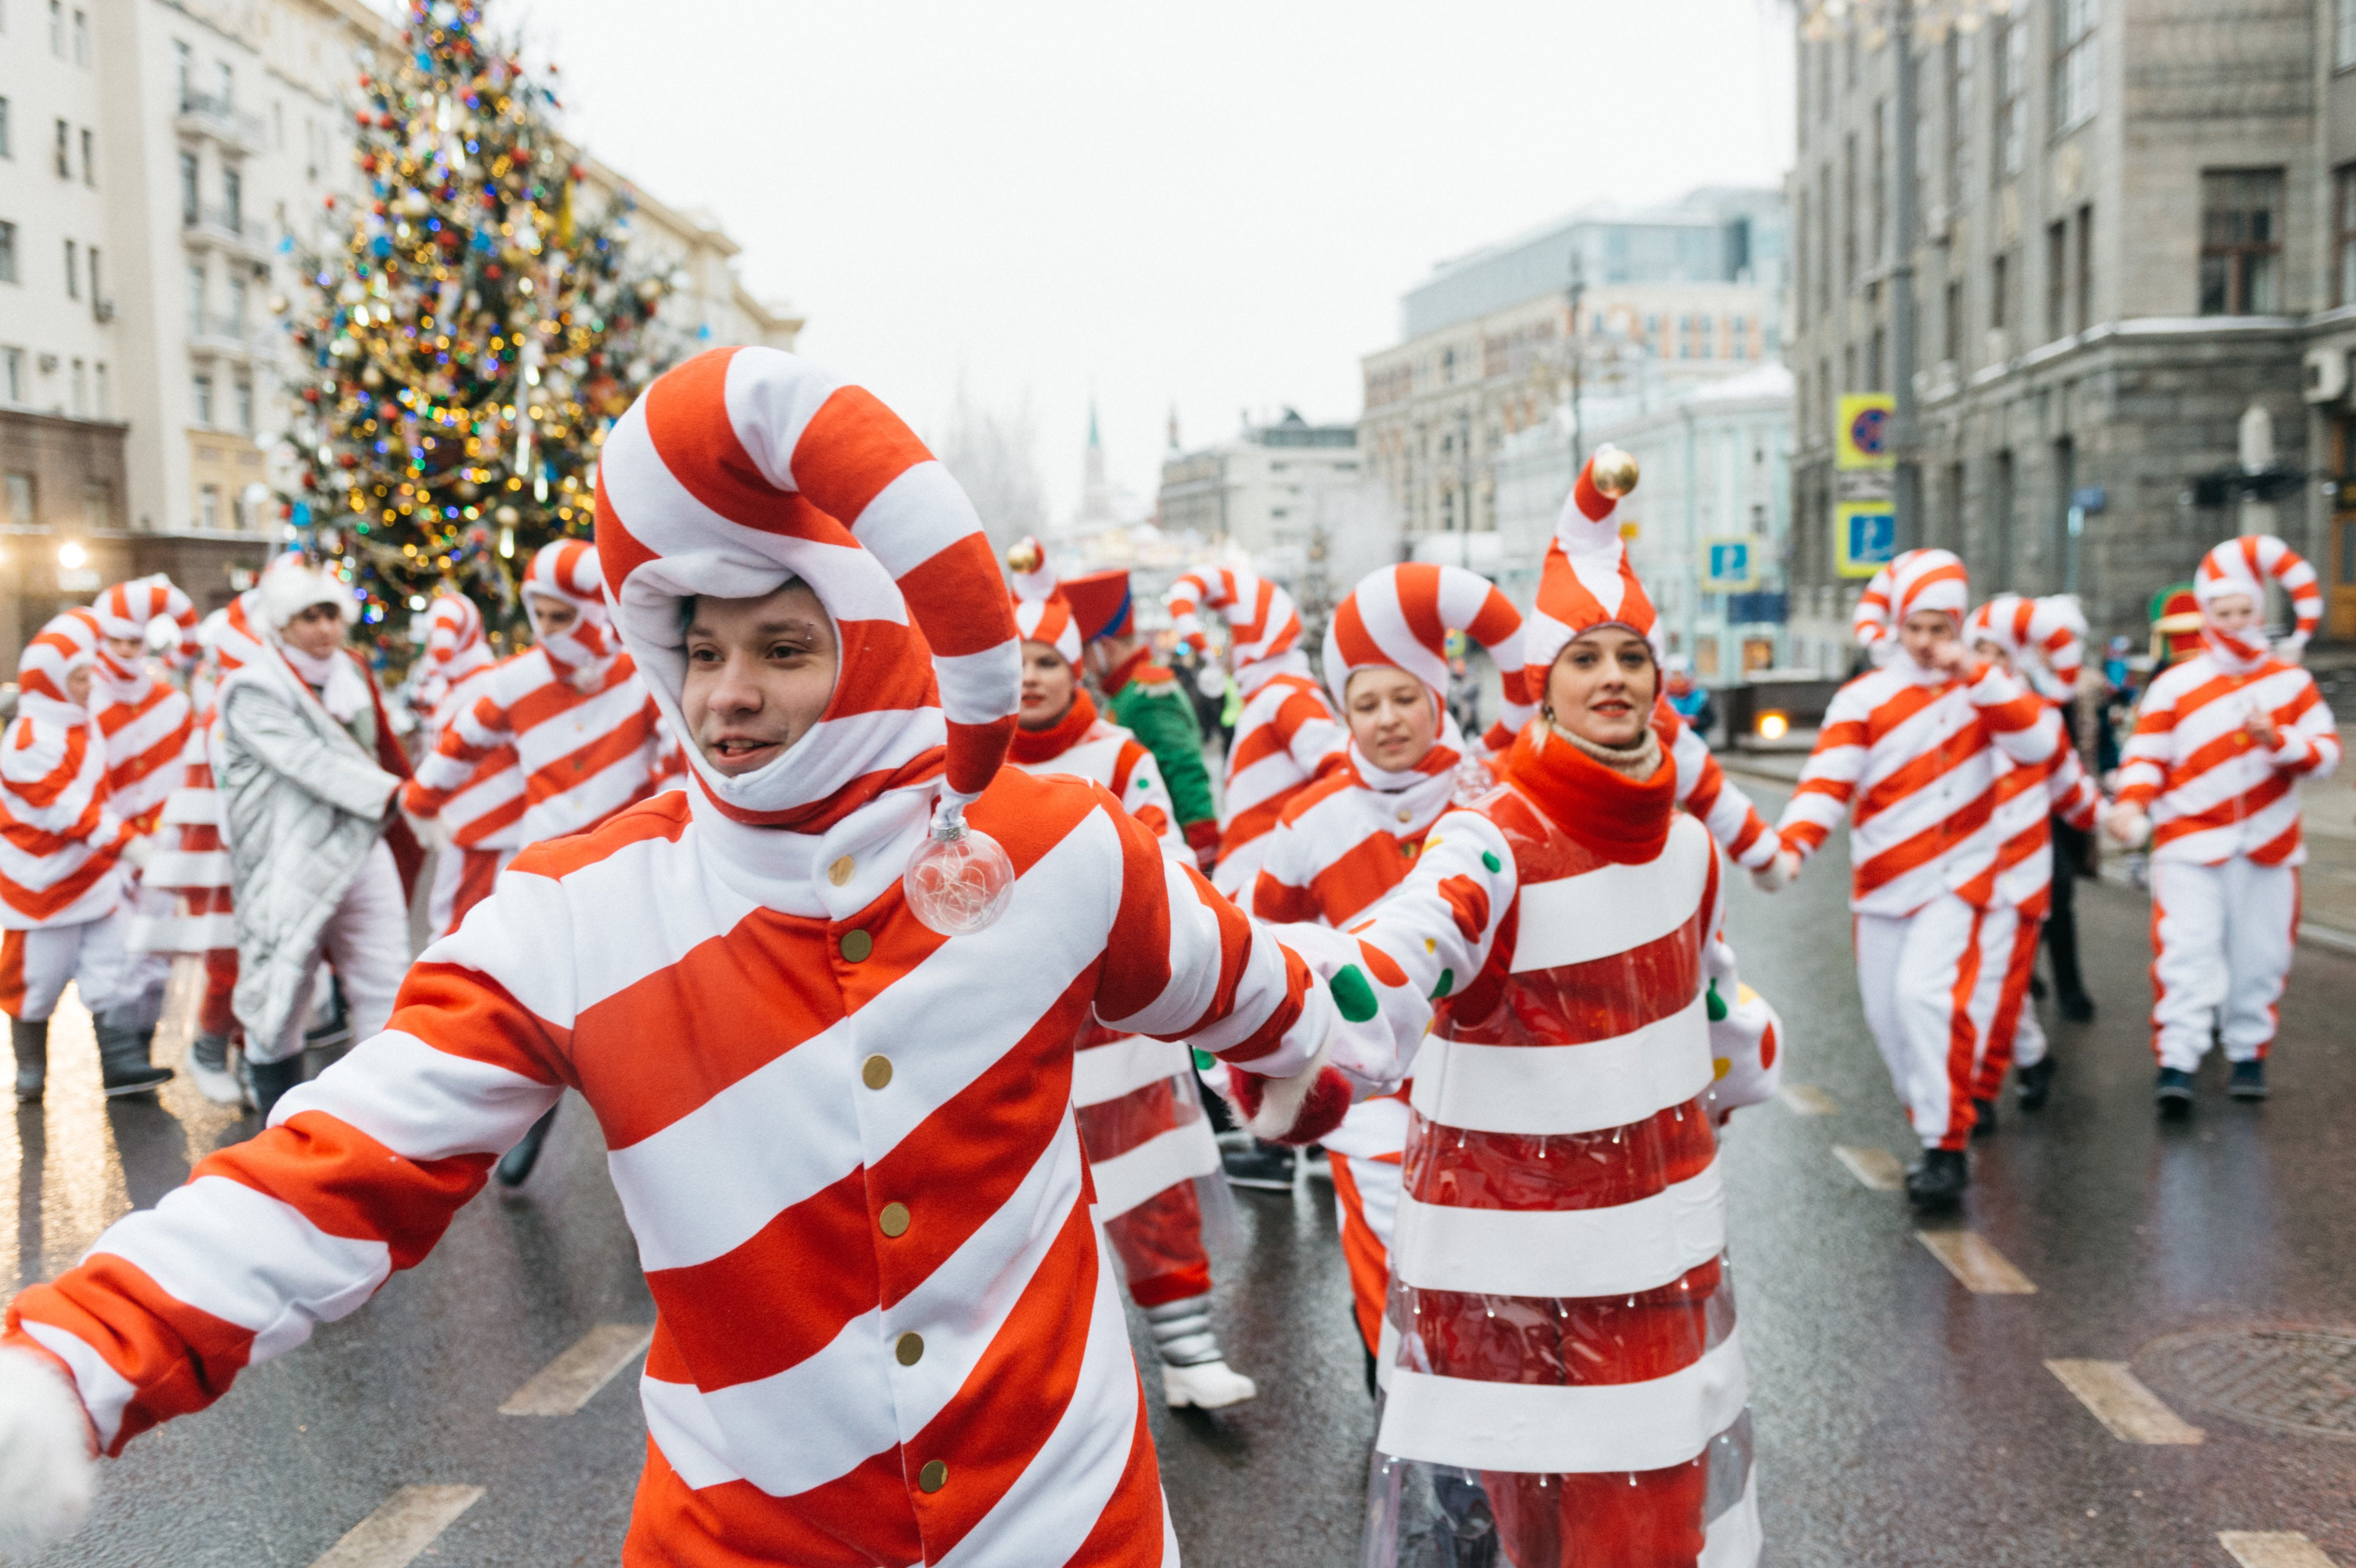 People Wearing Candy Cane Costume